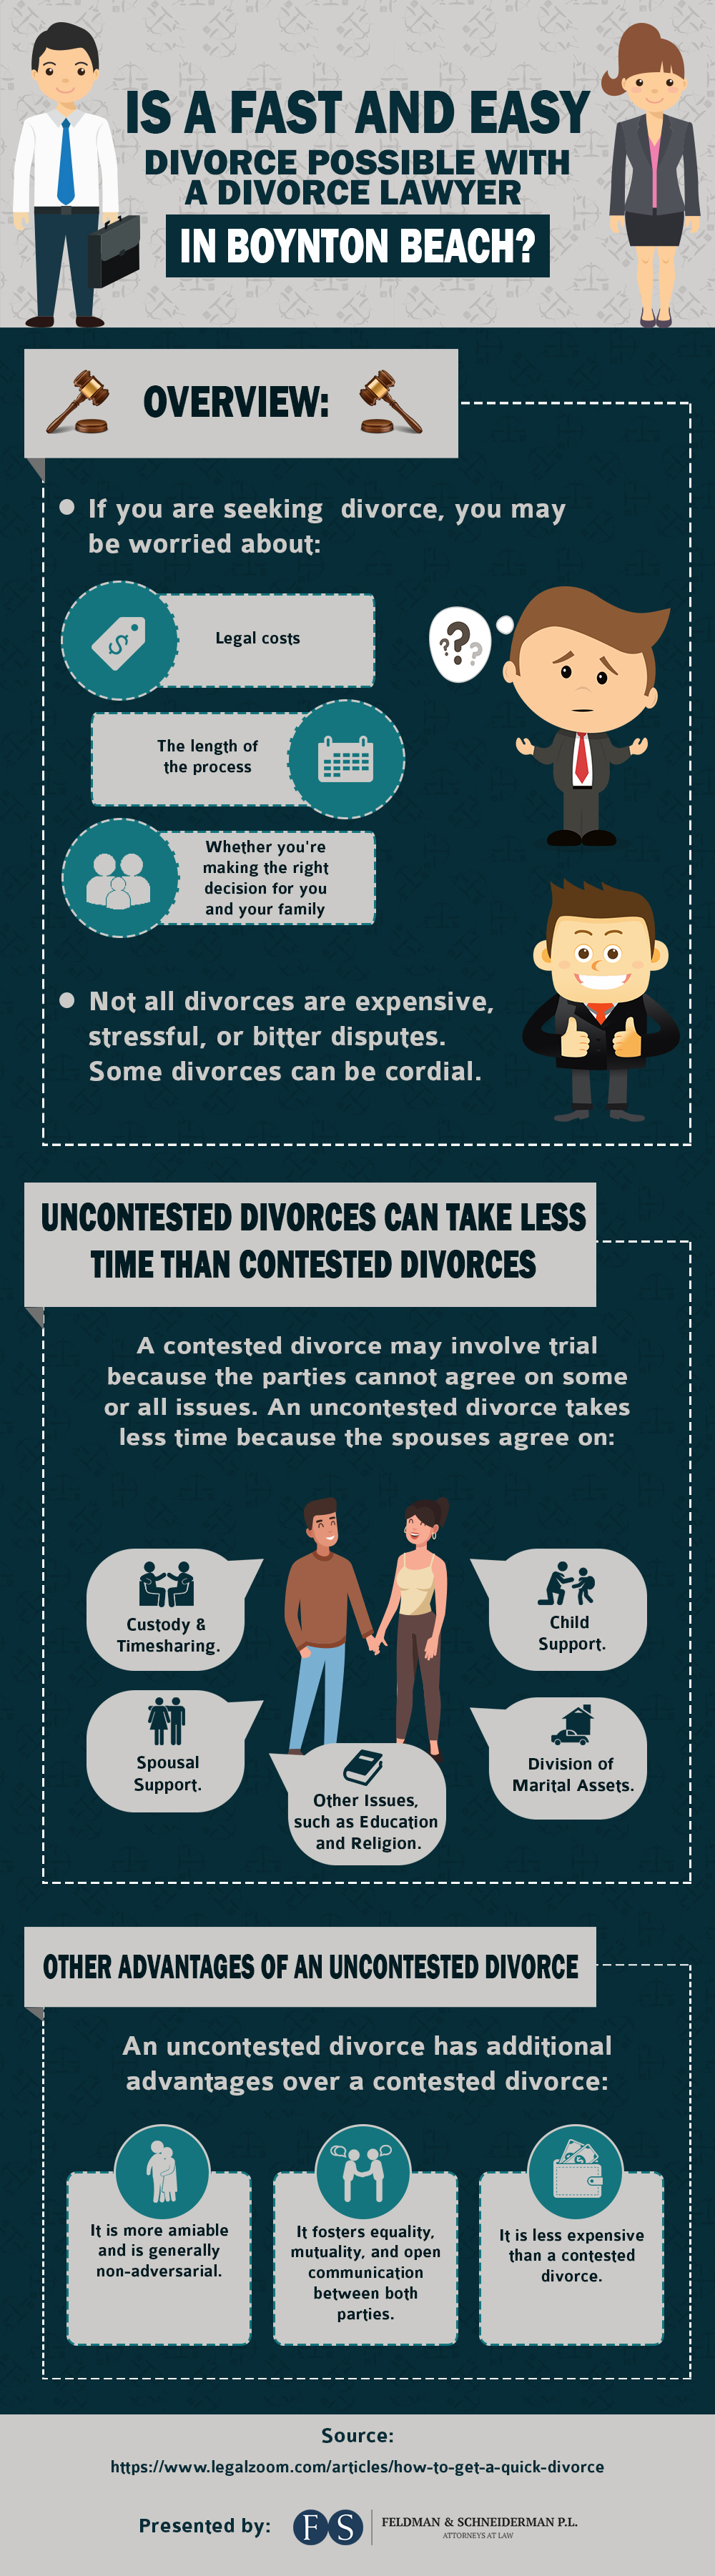 is a fast and easy divorce possible